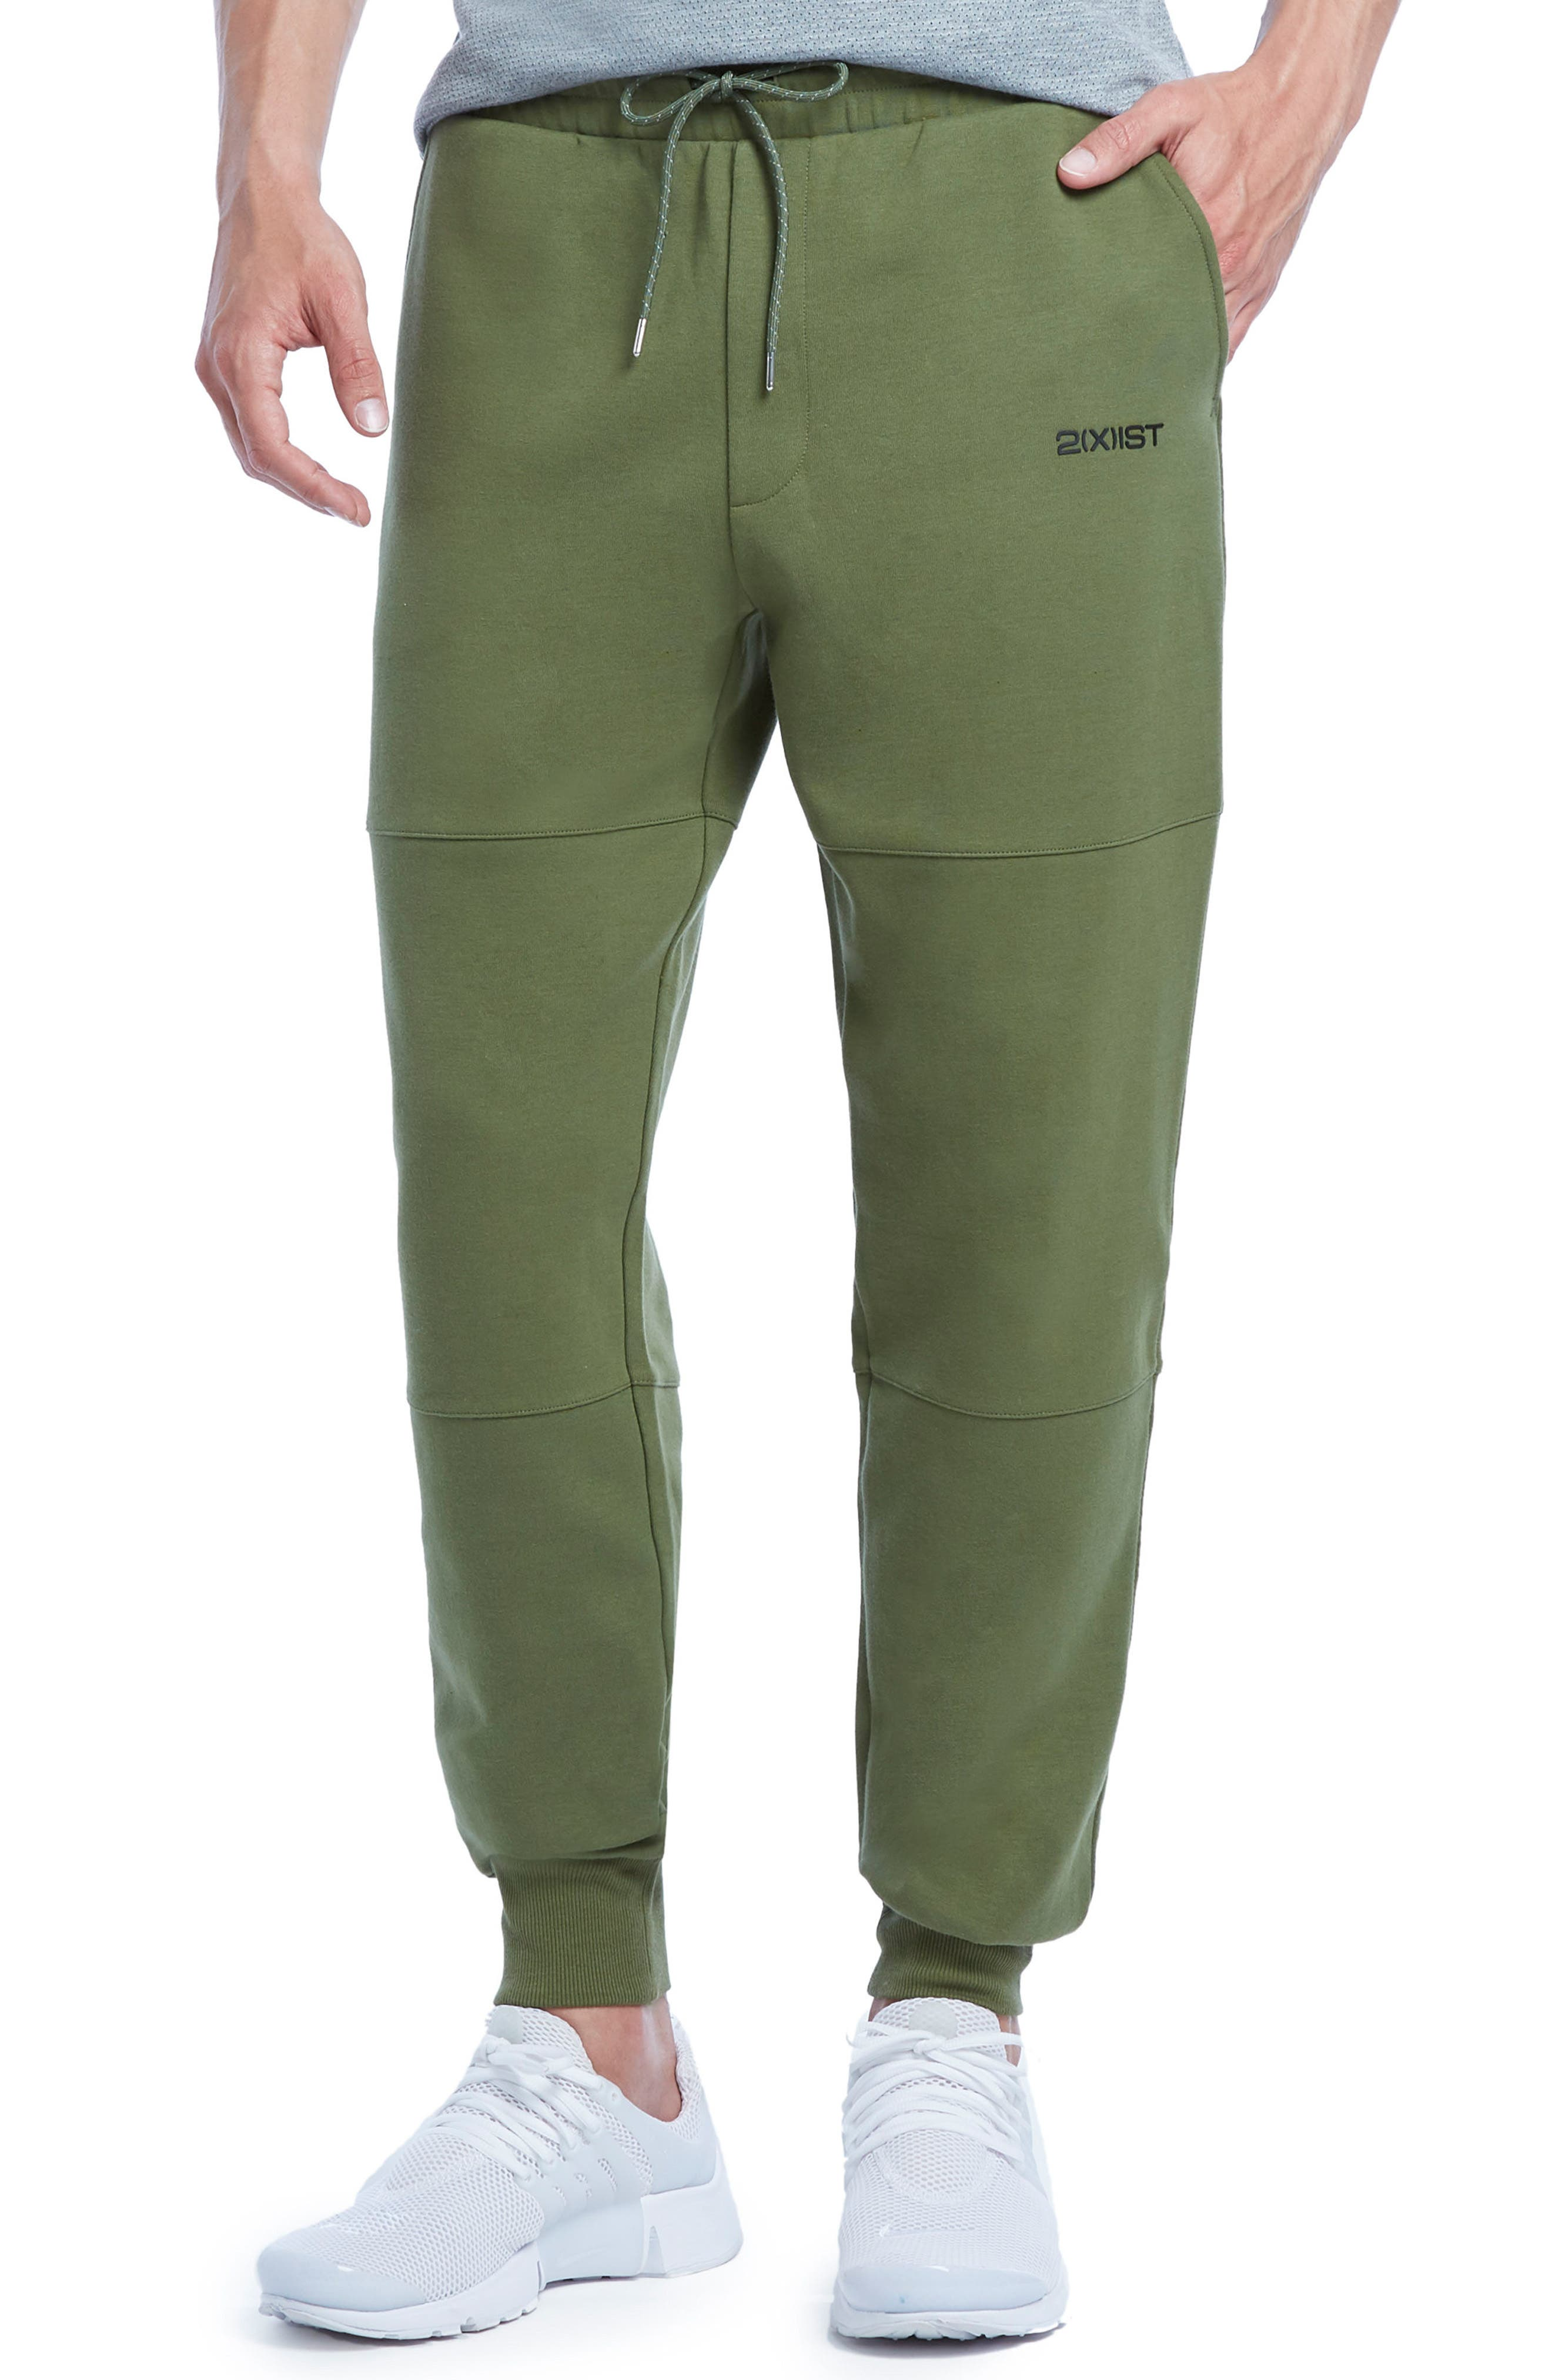 Main Image - 2(x)ist Military Sport Lounge Pants